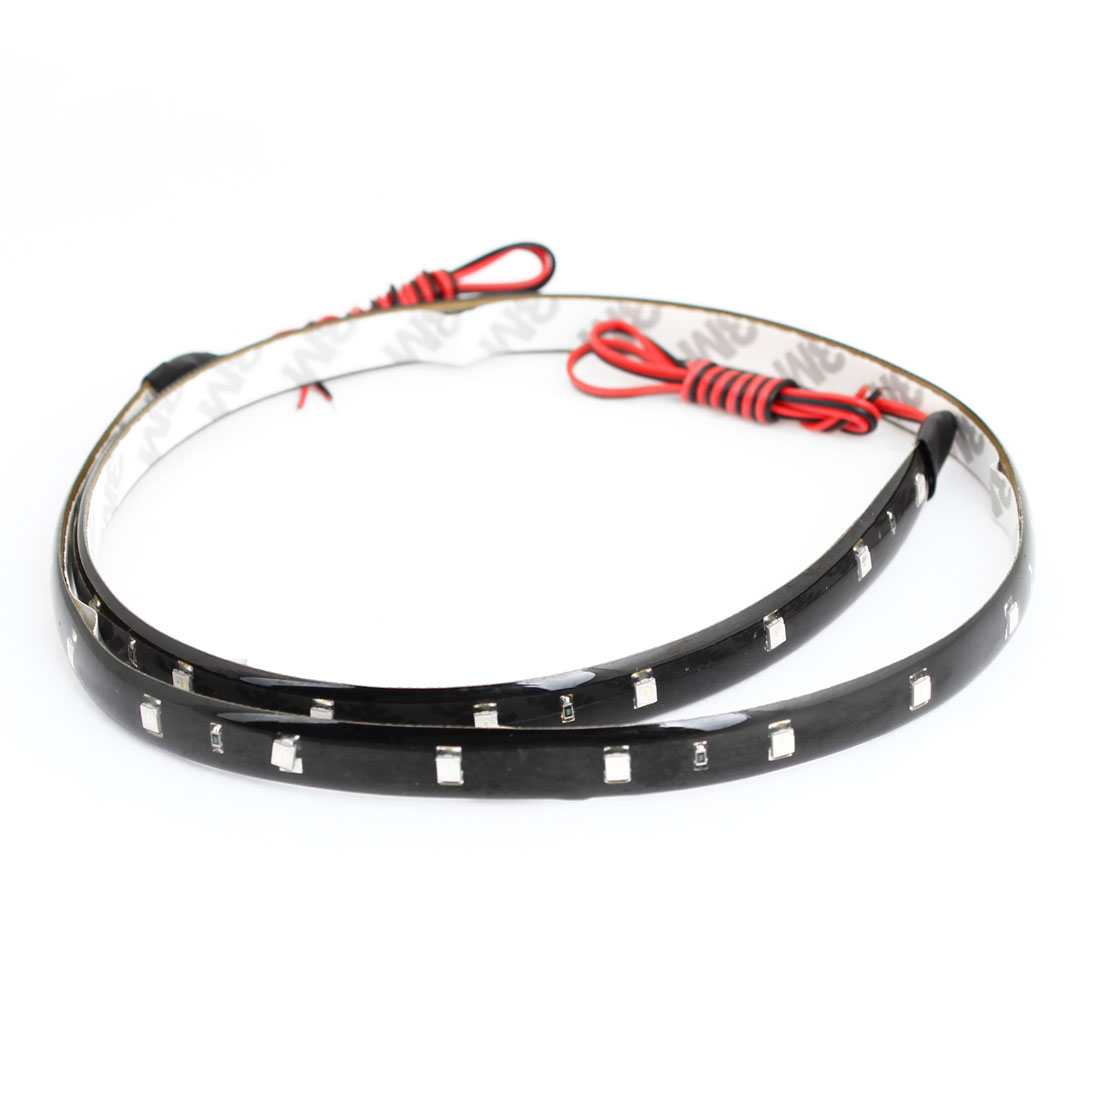 Truck Car Blue 5050 SMD 30 LEDs 60cm Decorative LED Lamp Strip